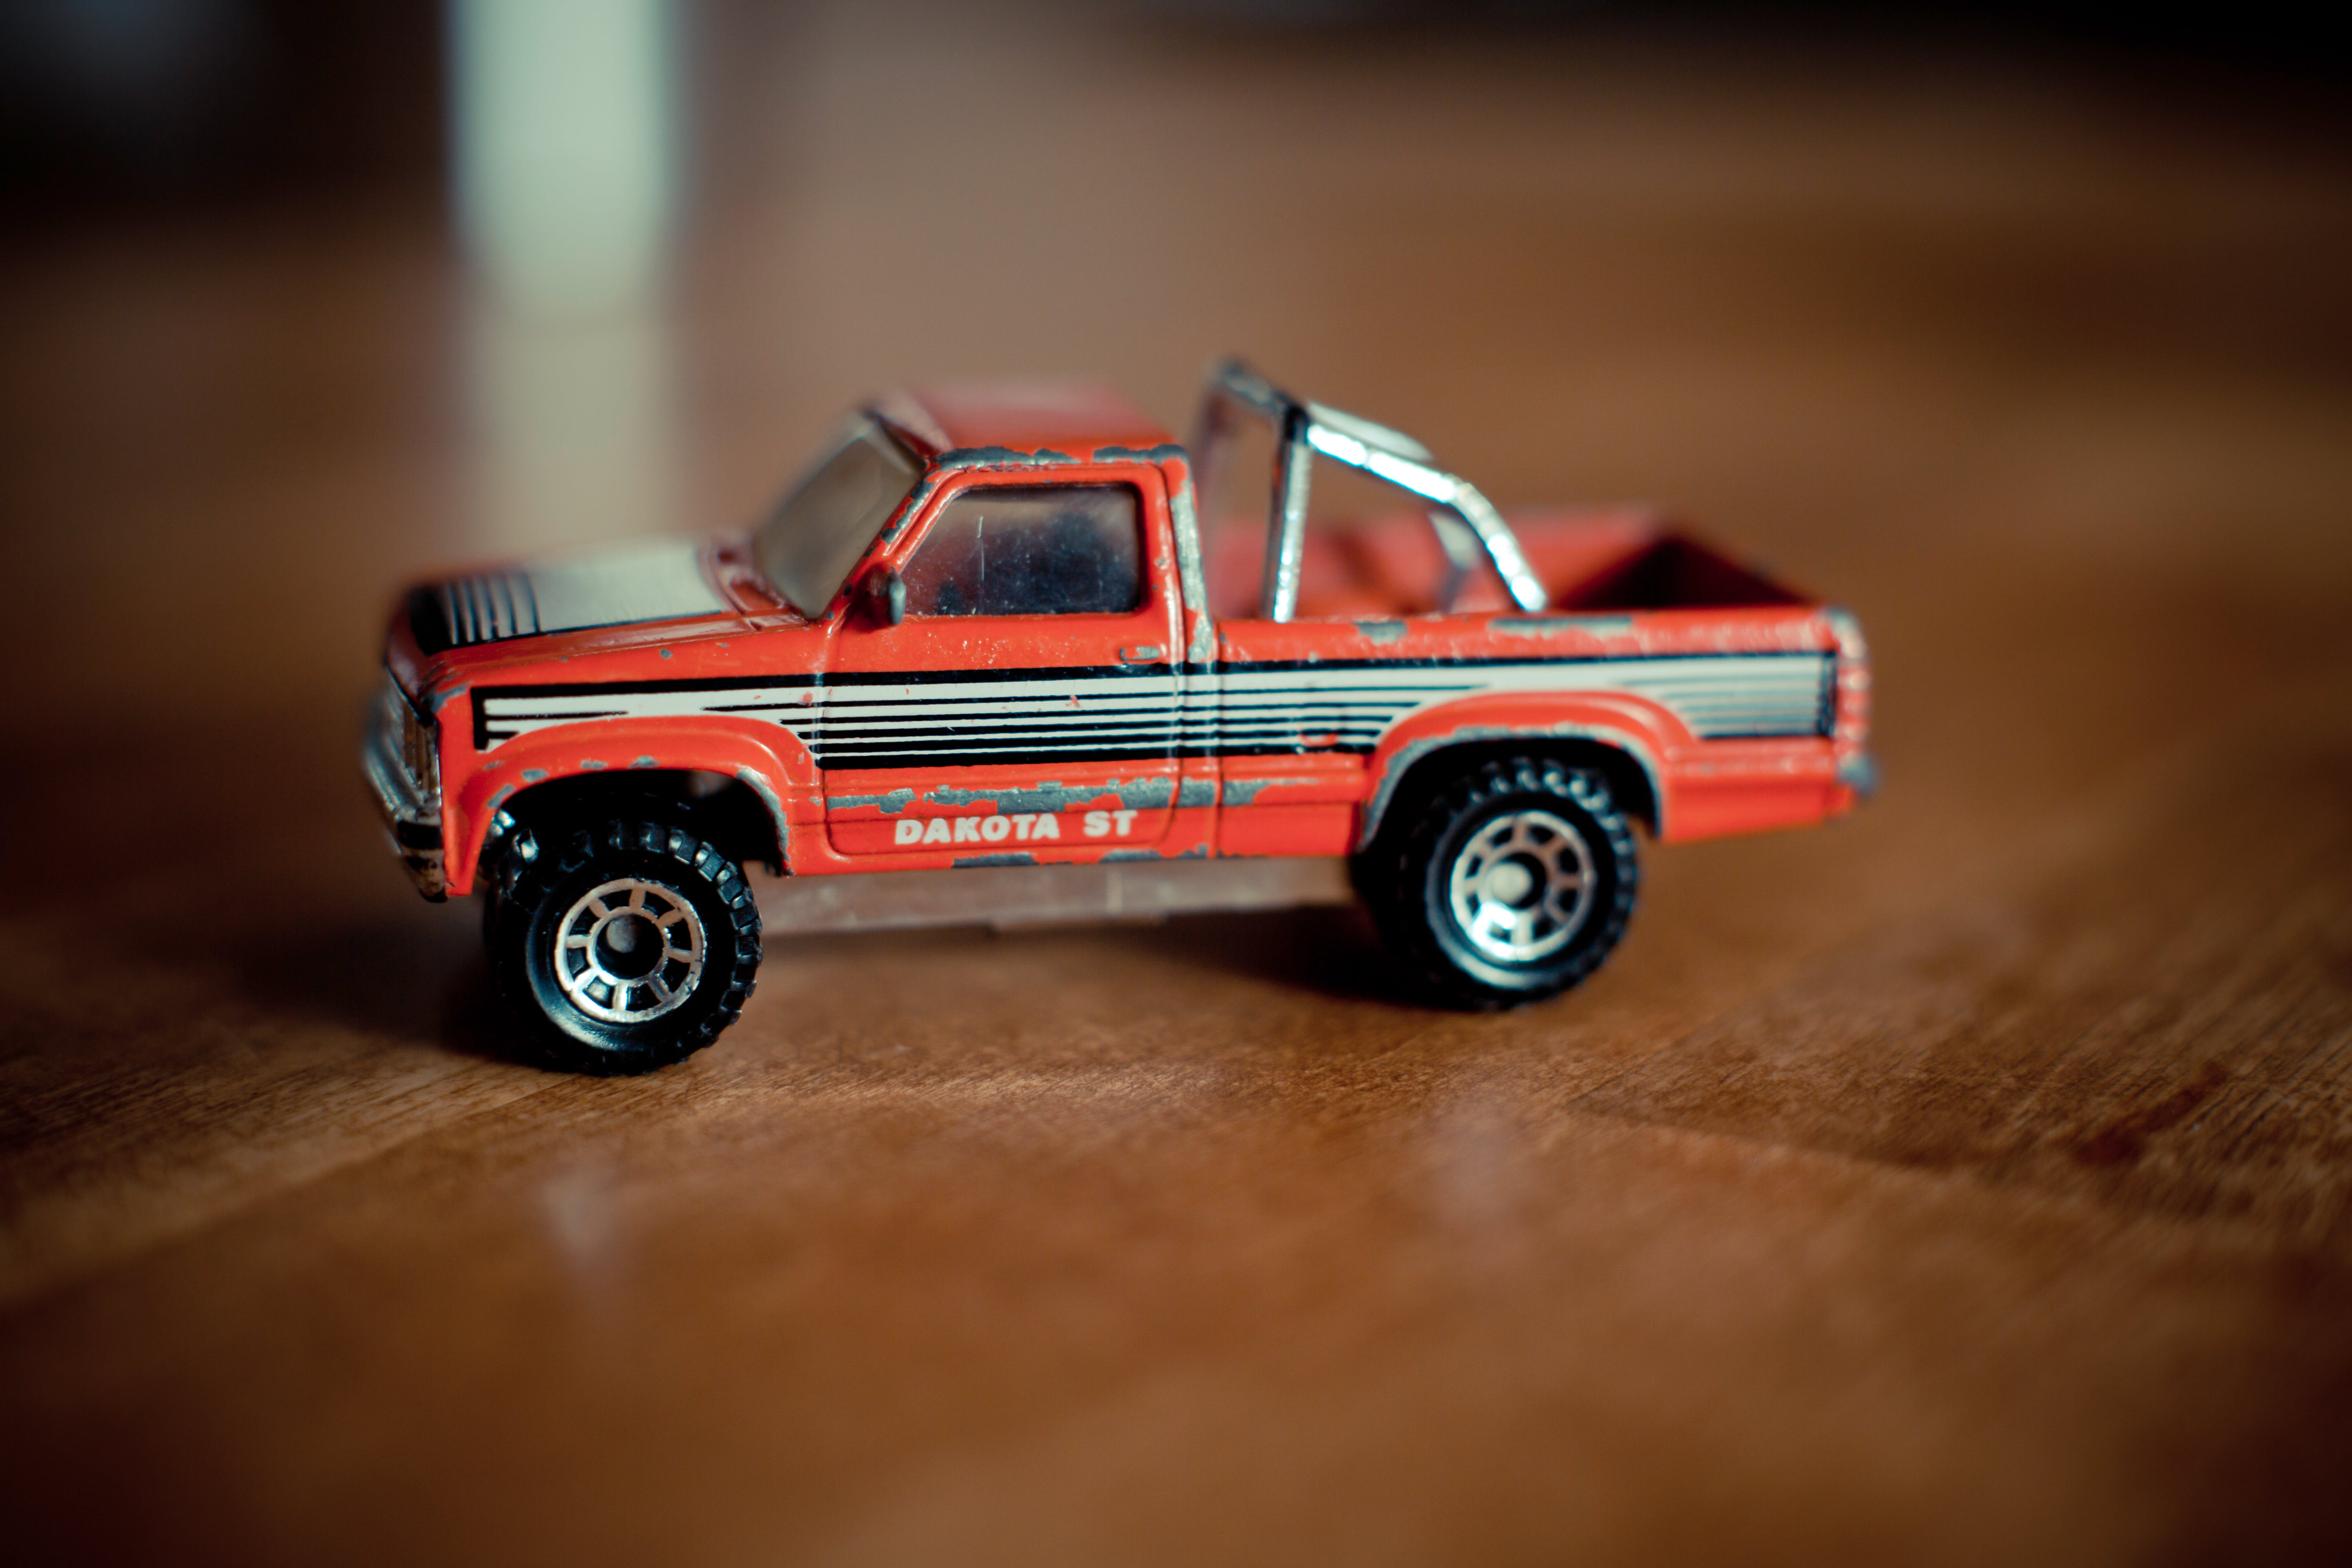 Red and Gray Single Cab Pickup Truck Scale Model on Table